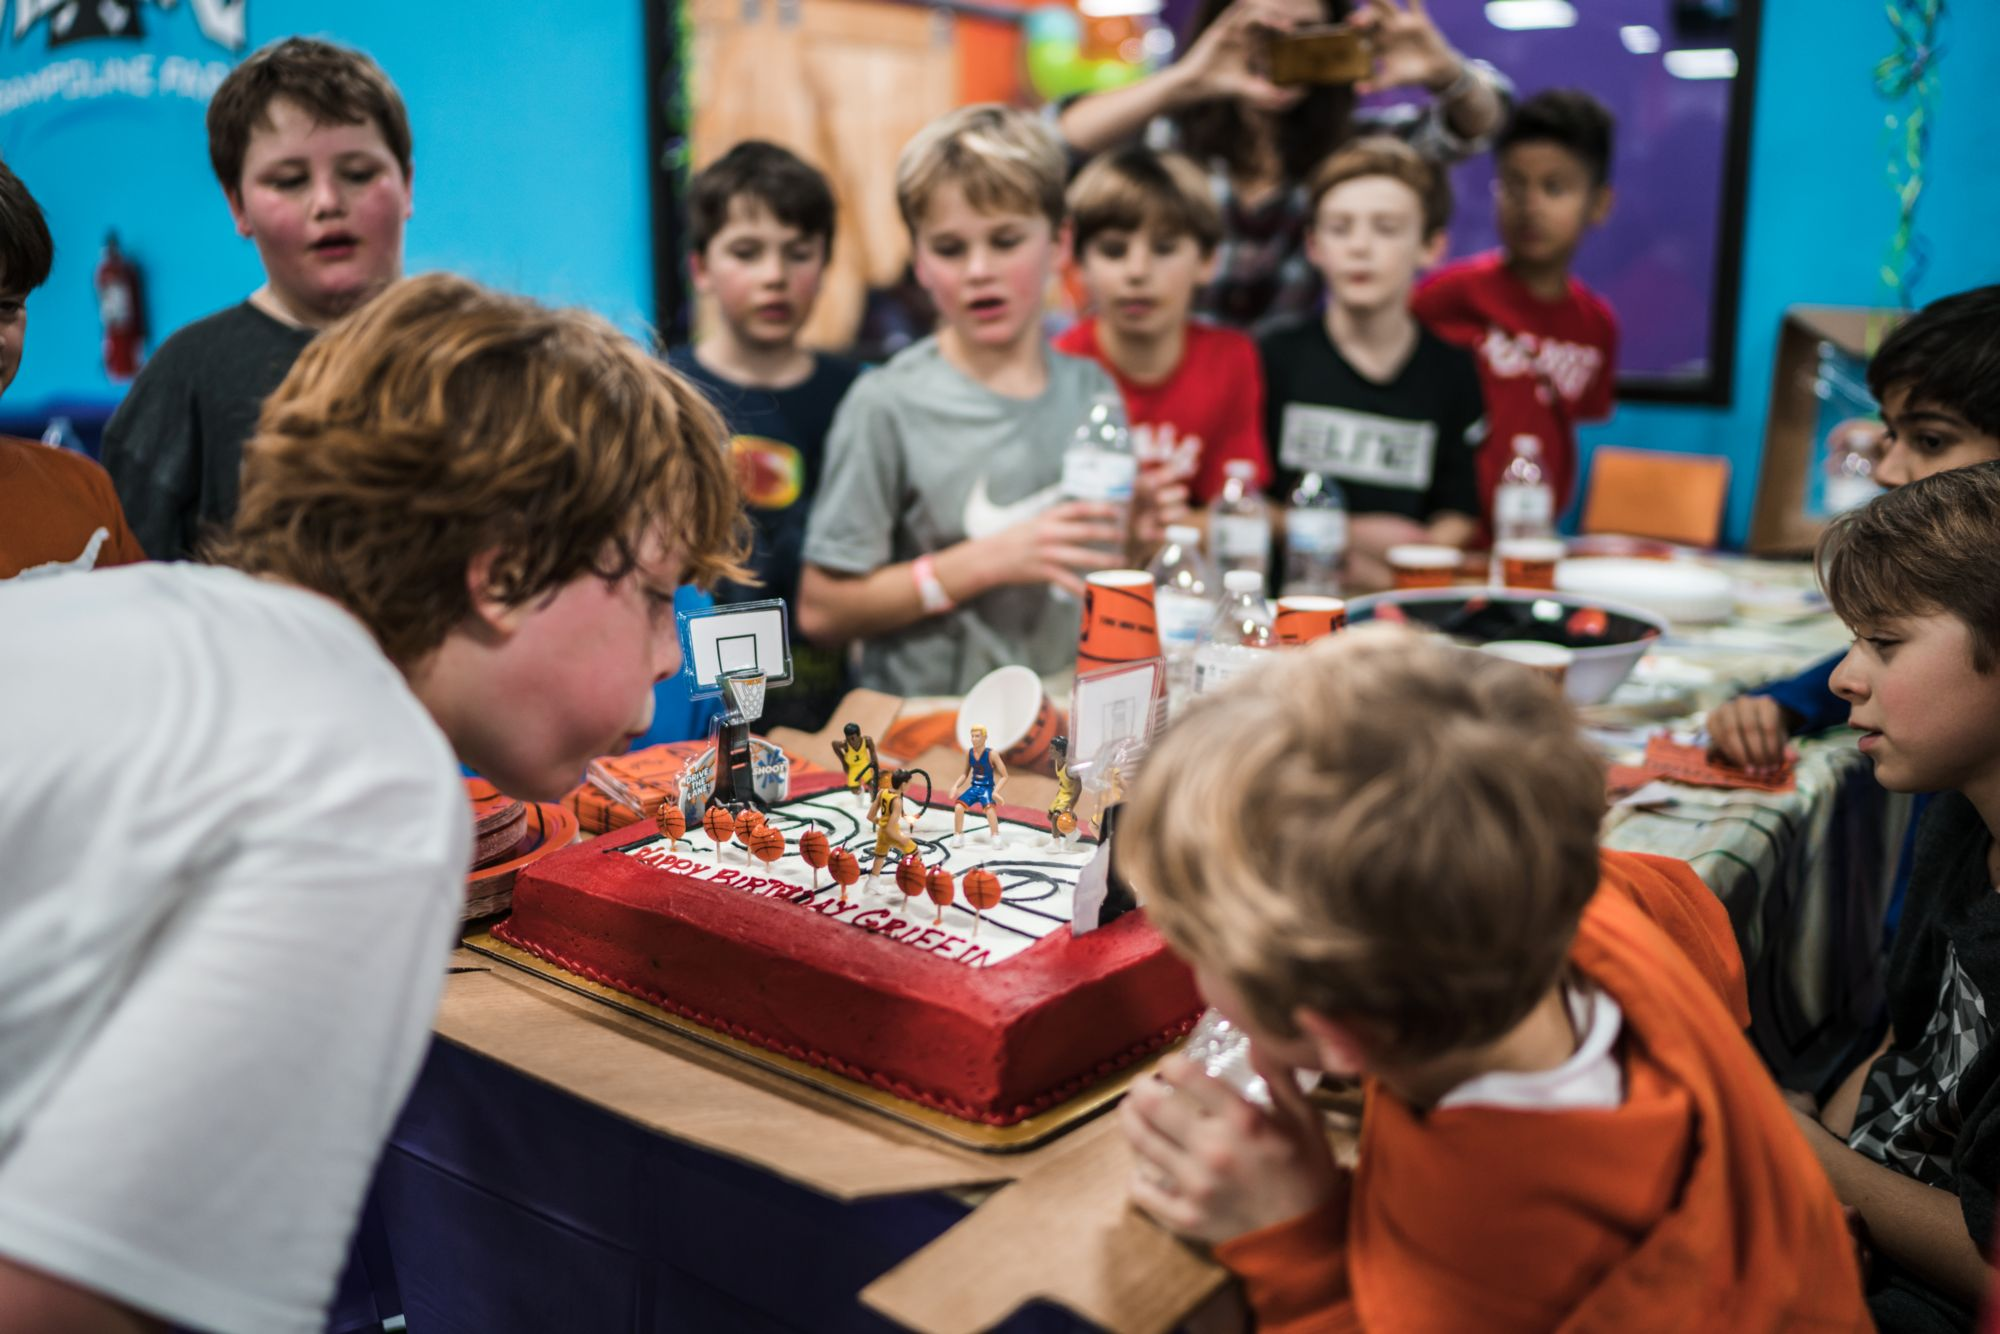 The Results Are In Everyone Loves Birthday Parties As Altitude Trampoline Park Arent Just For Kids We Celebrate Birthdays Of All Ages